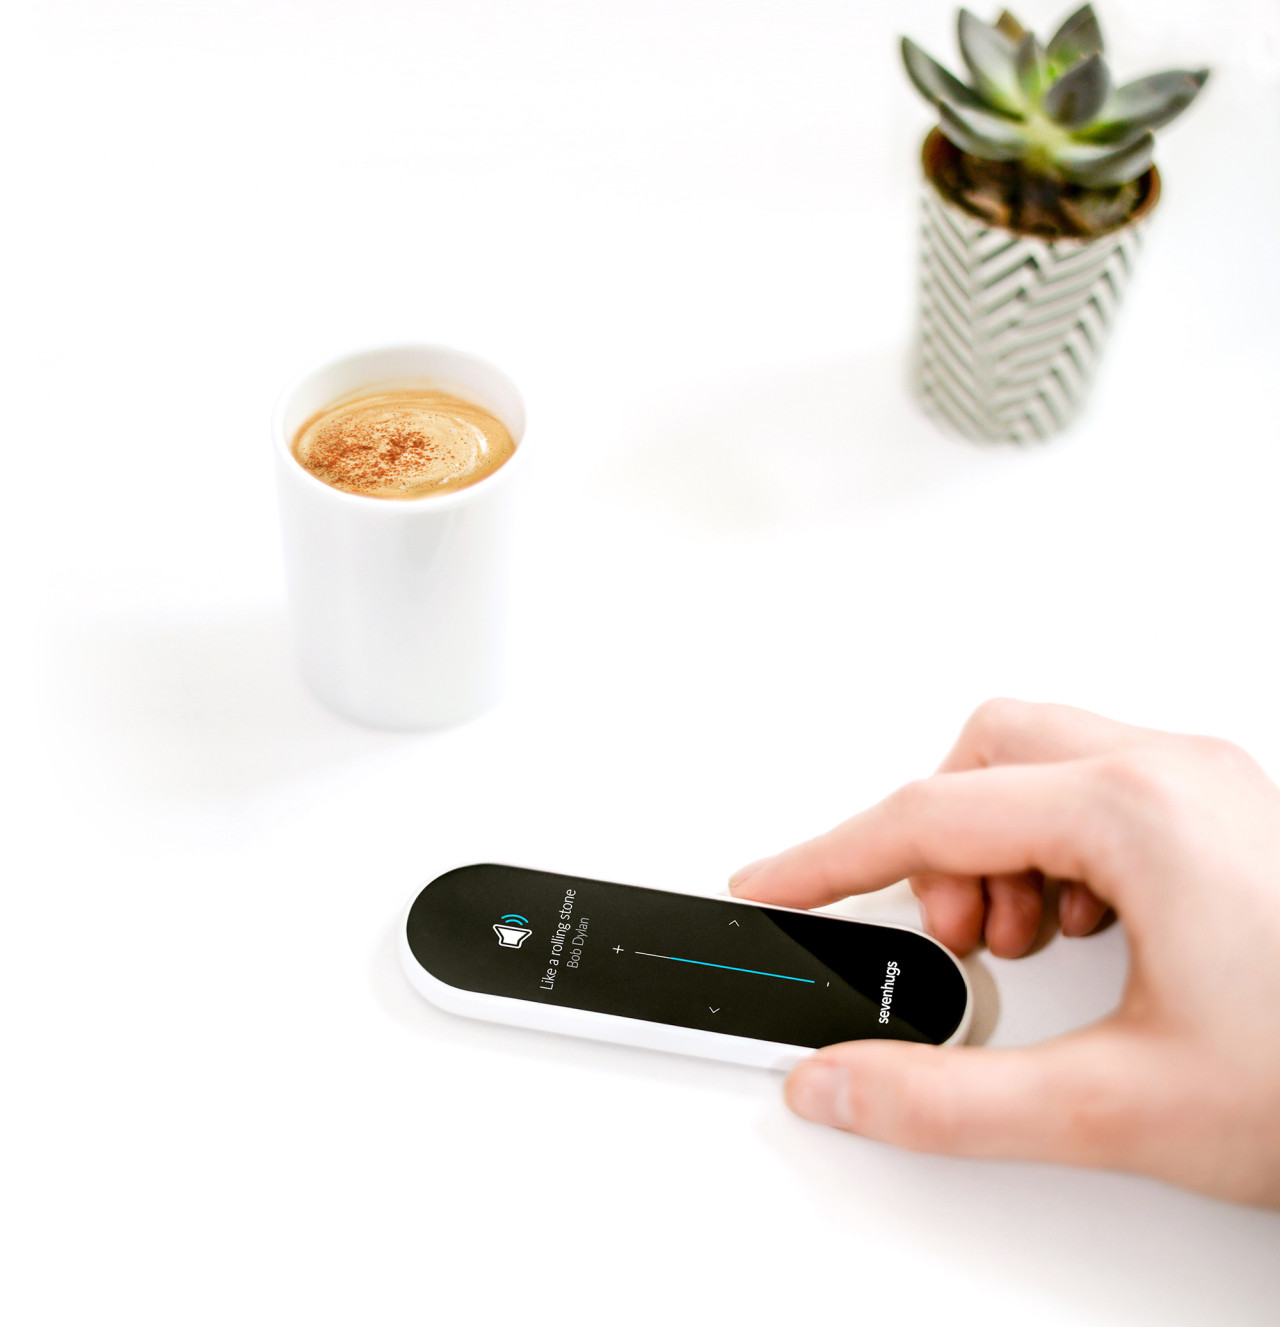 Sevenhugs Smart Remote Aims To Be Universally Accepted